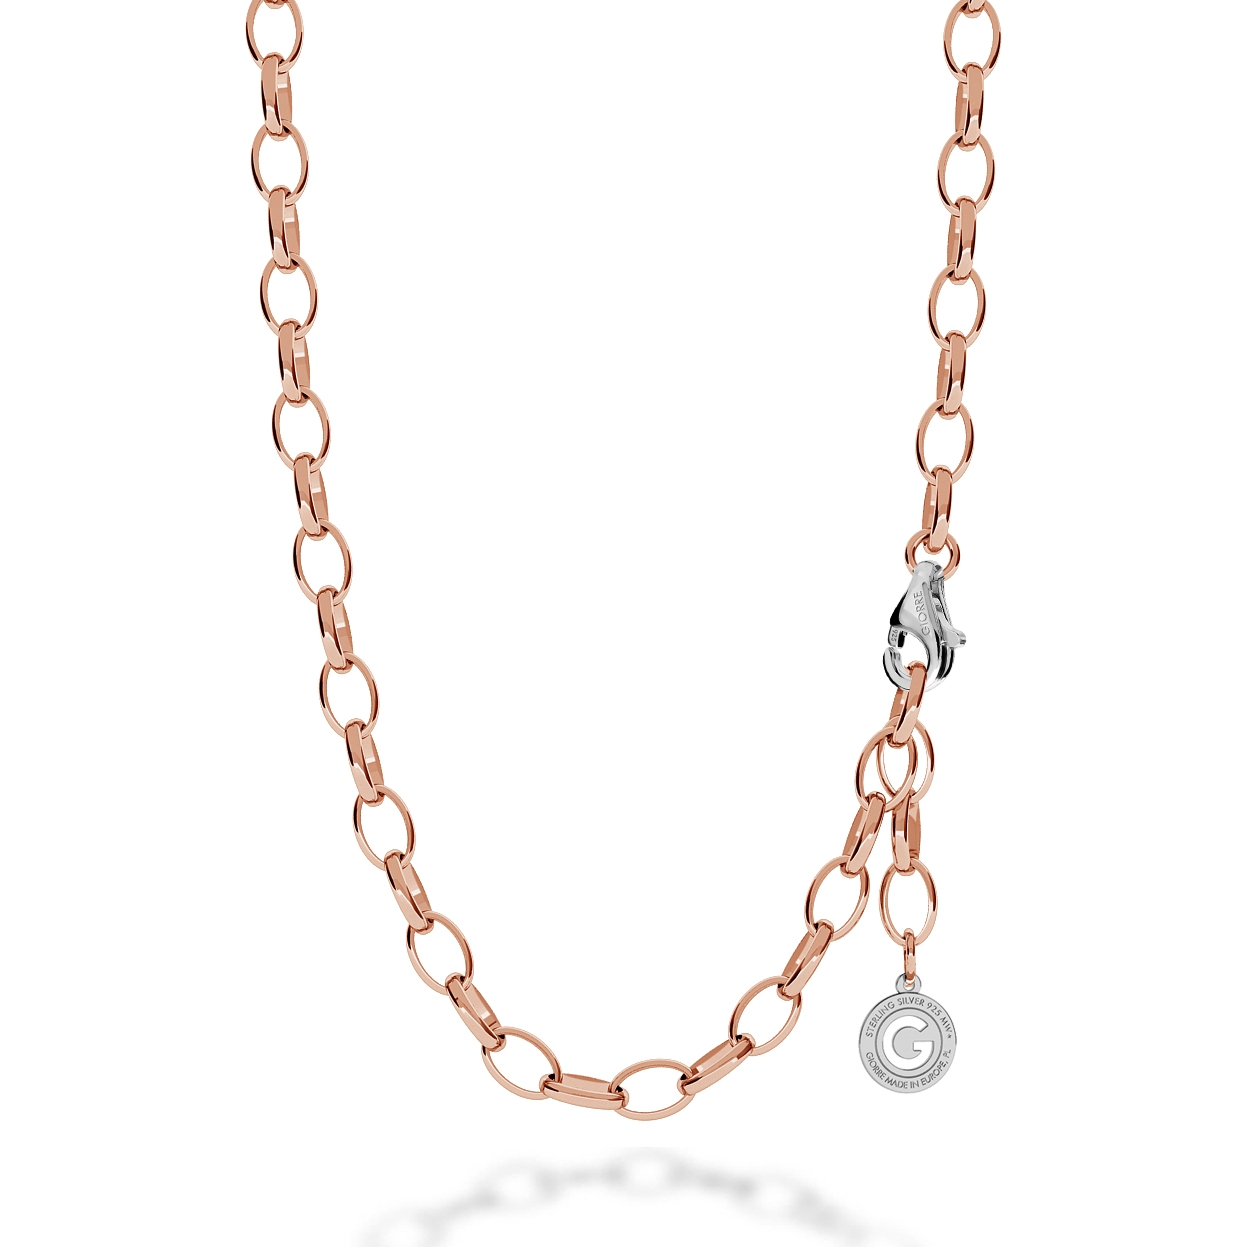 STERLING SILVER NECKLACE 55-65 CM PINK GOLD, LIGHT RHODIUM CLASP, LINK 9X6,5 MM